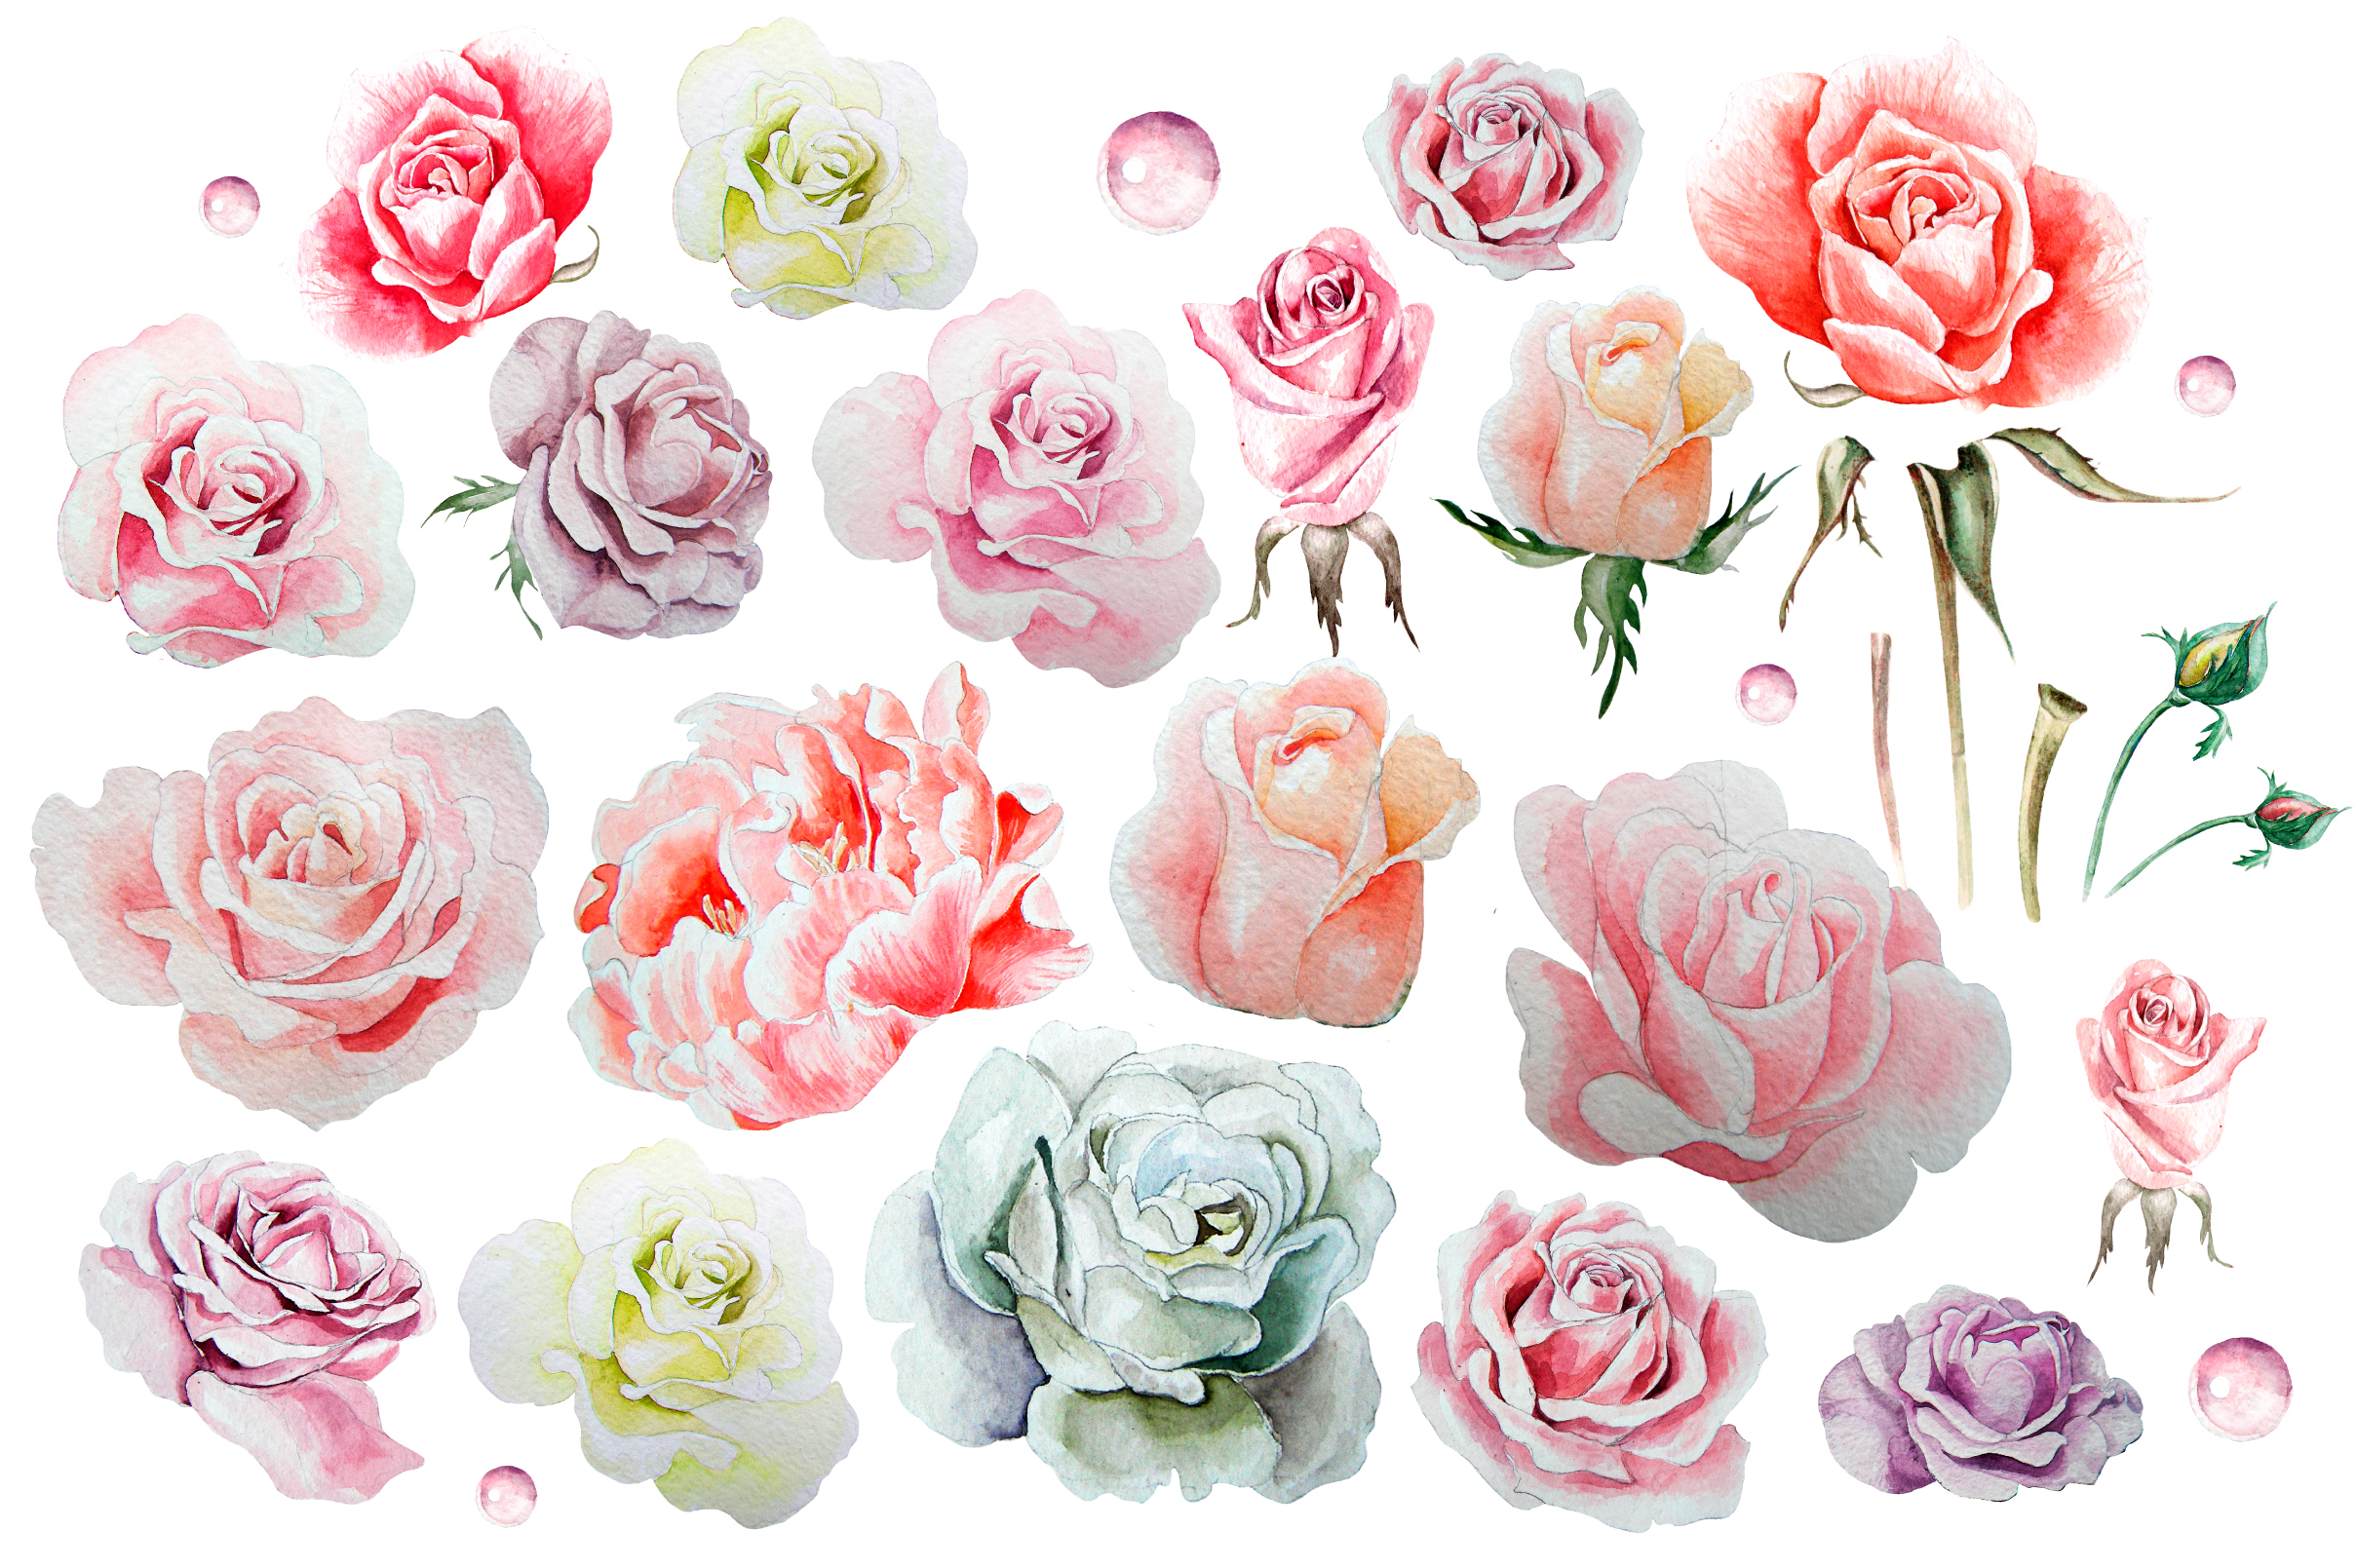 Hand drawn watercolor roses 2 example image 3